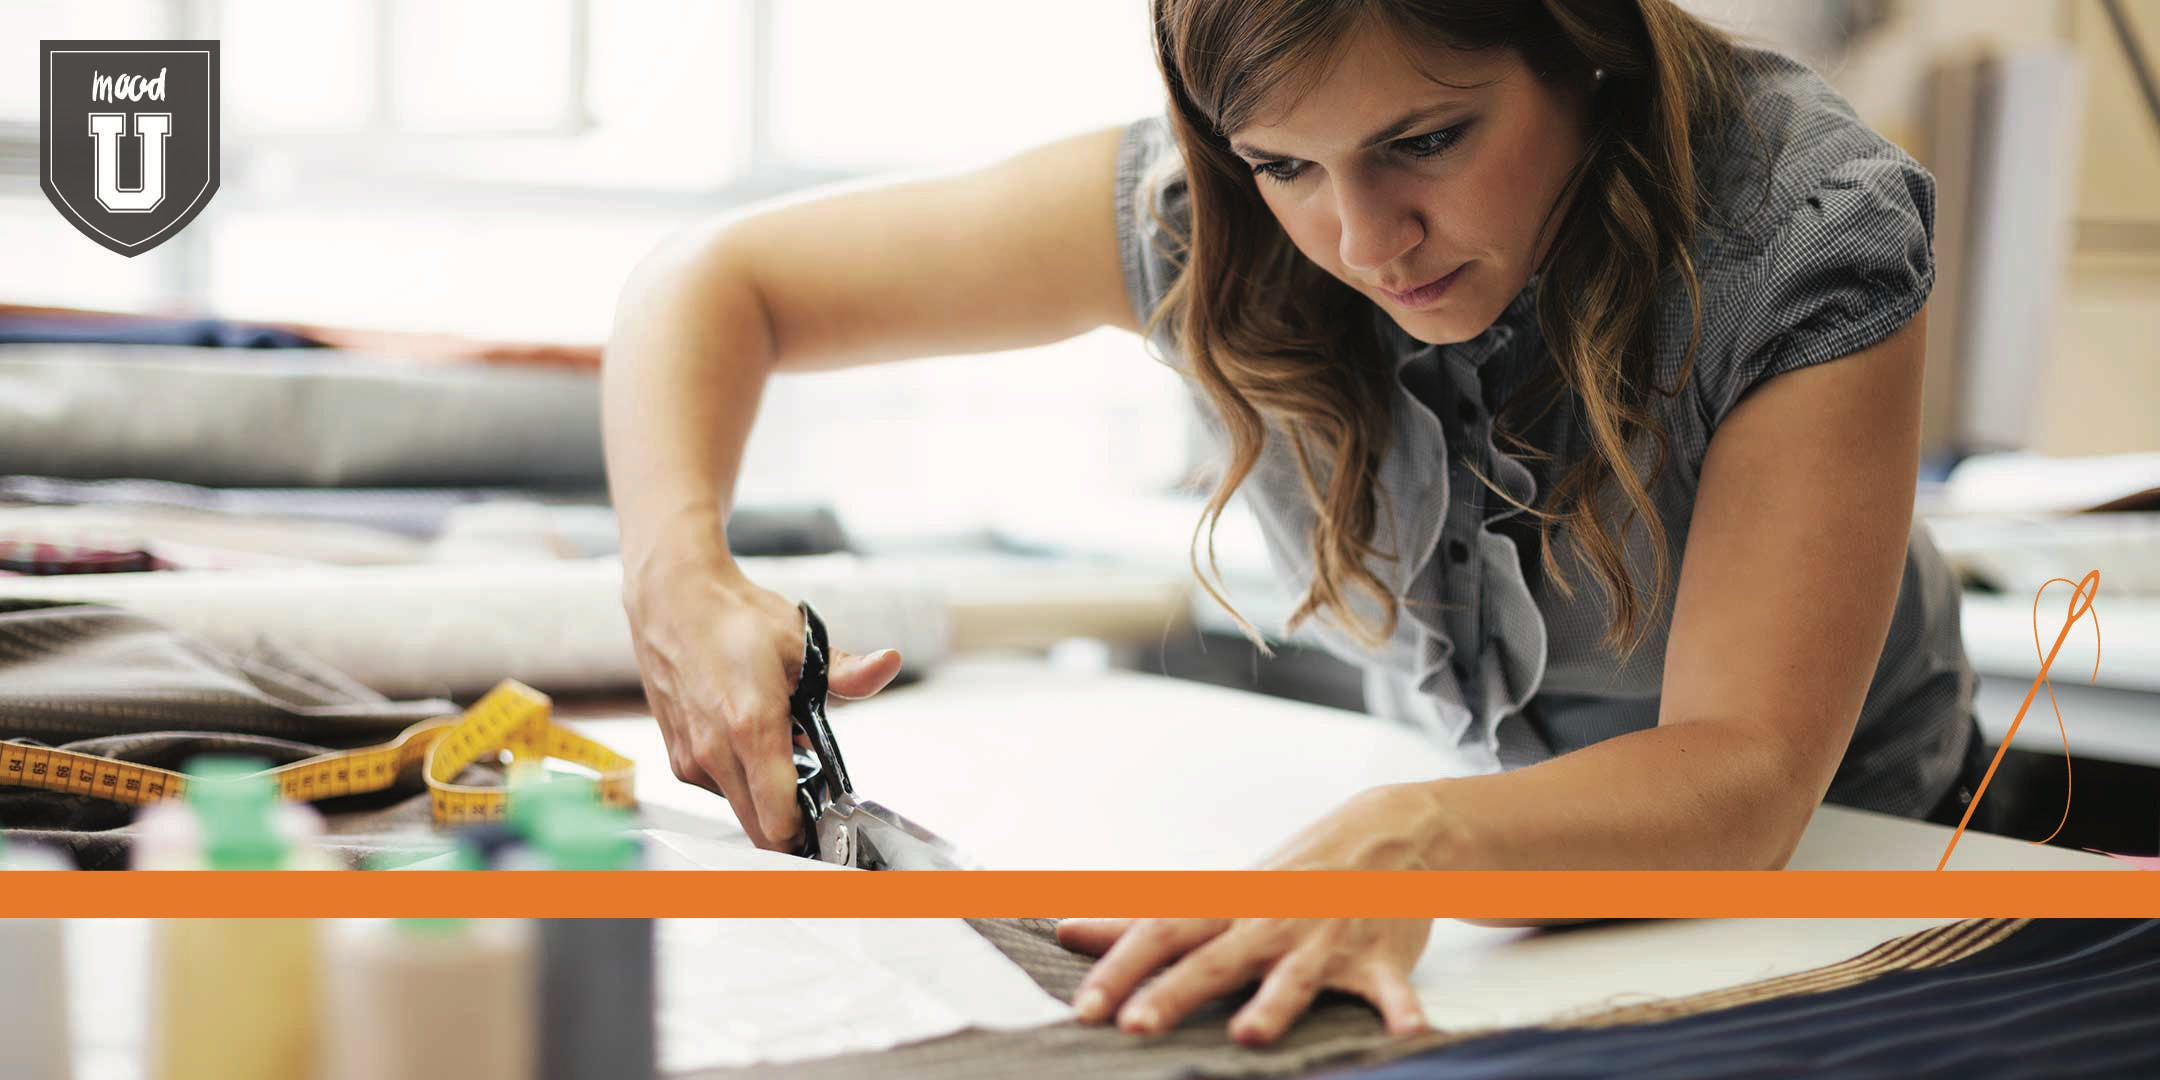 Intermediate Sewing for Adults || NYC | 6-Week Course | January Session